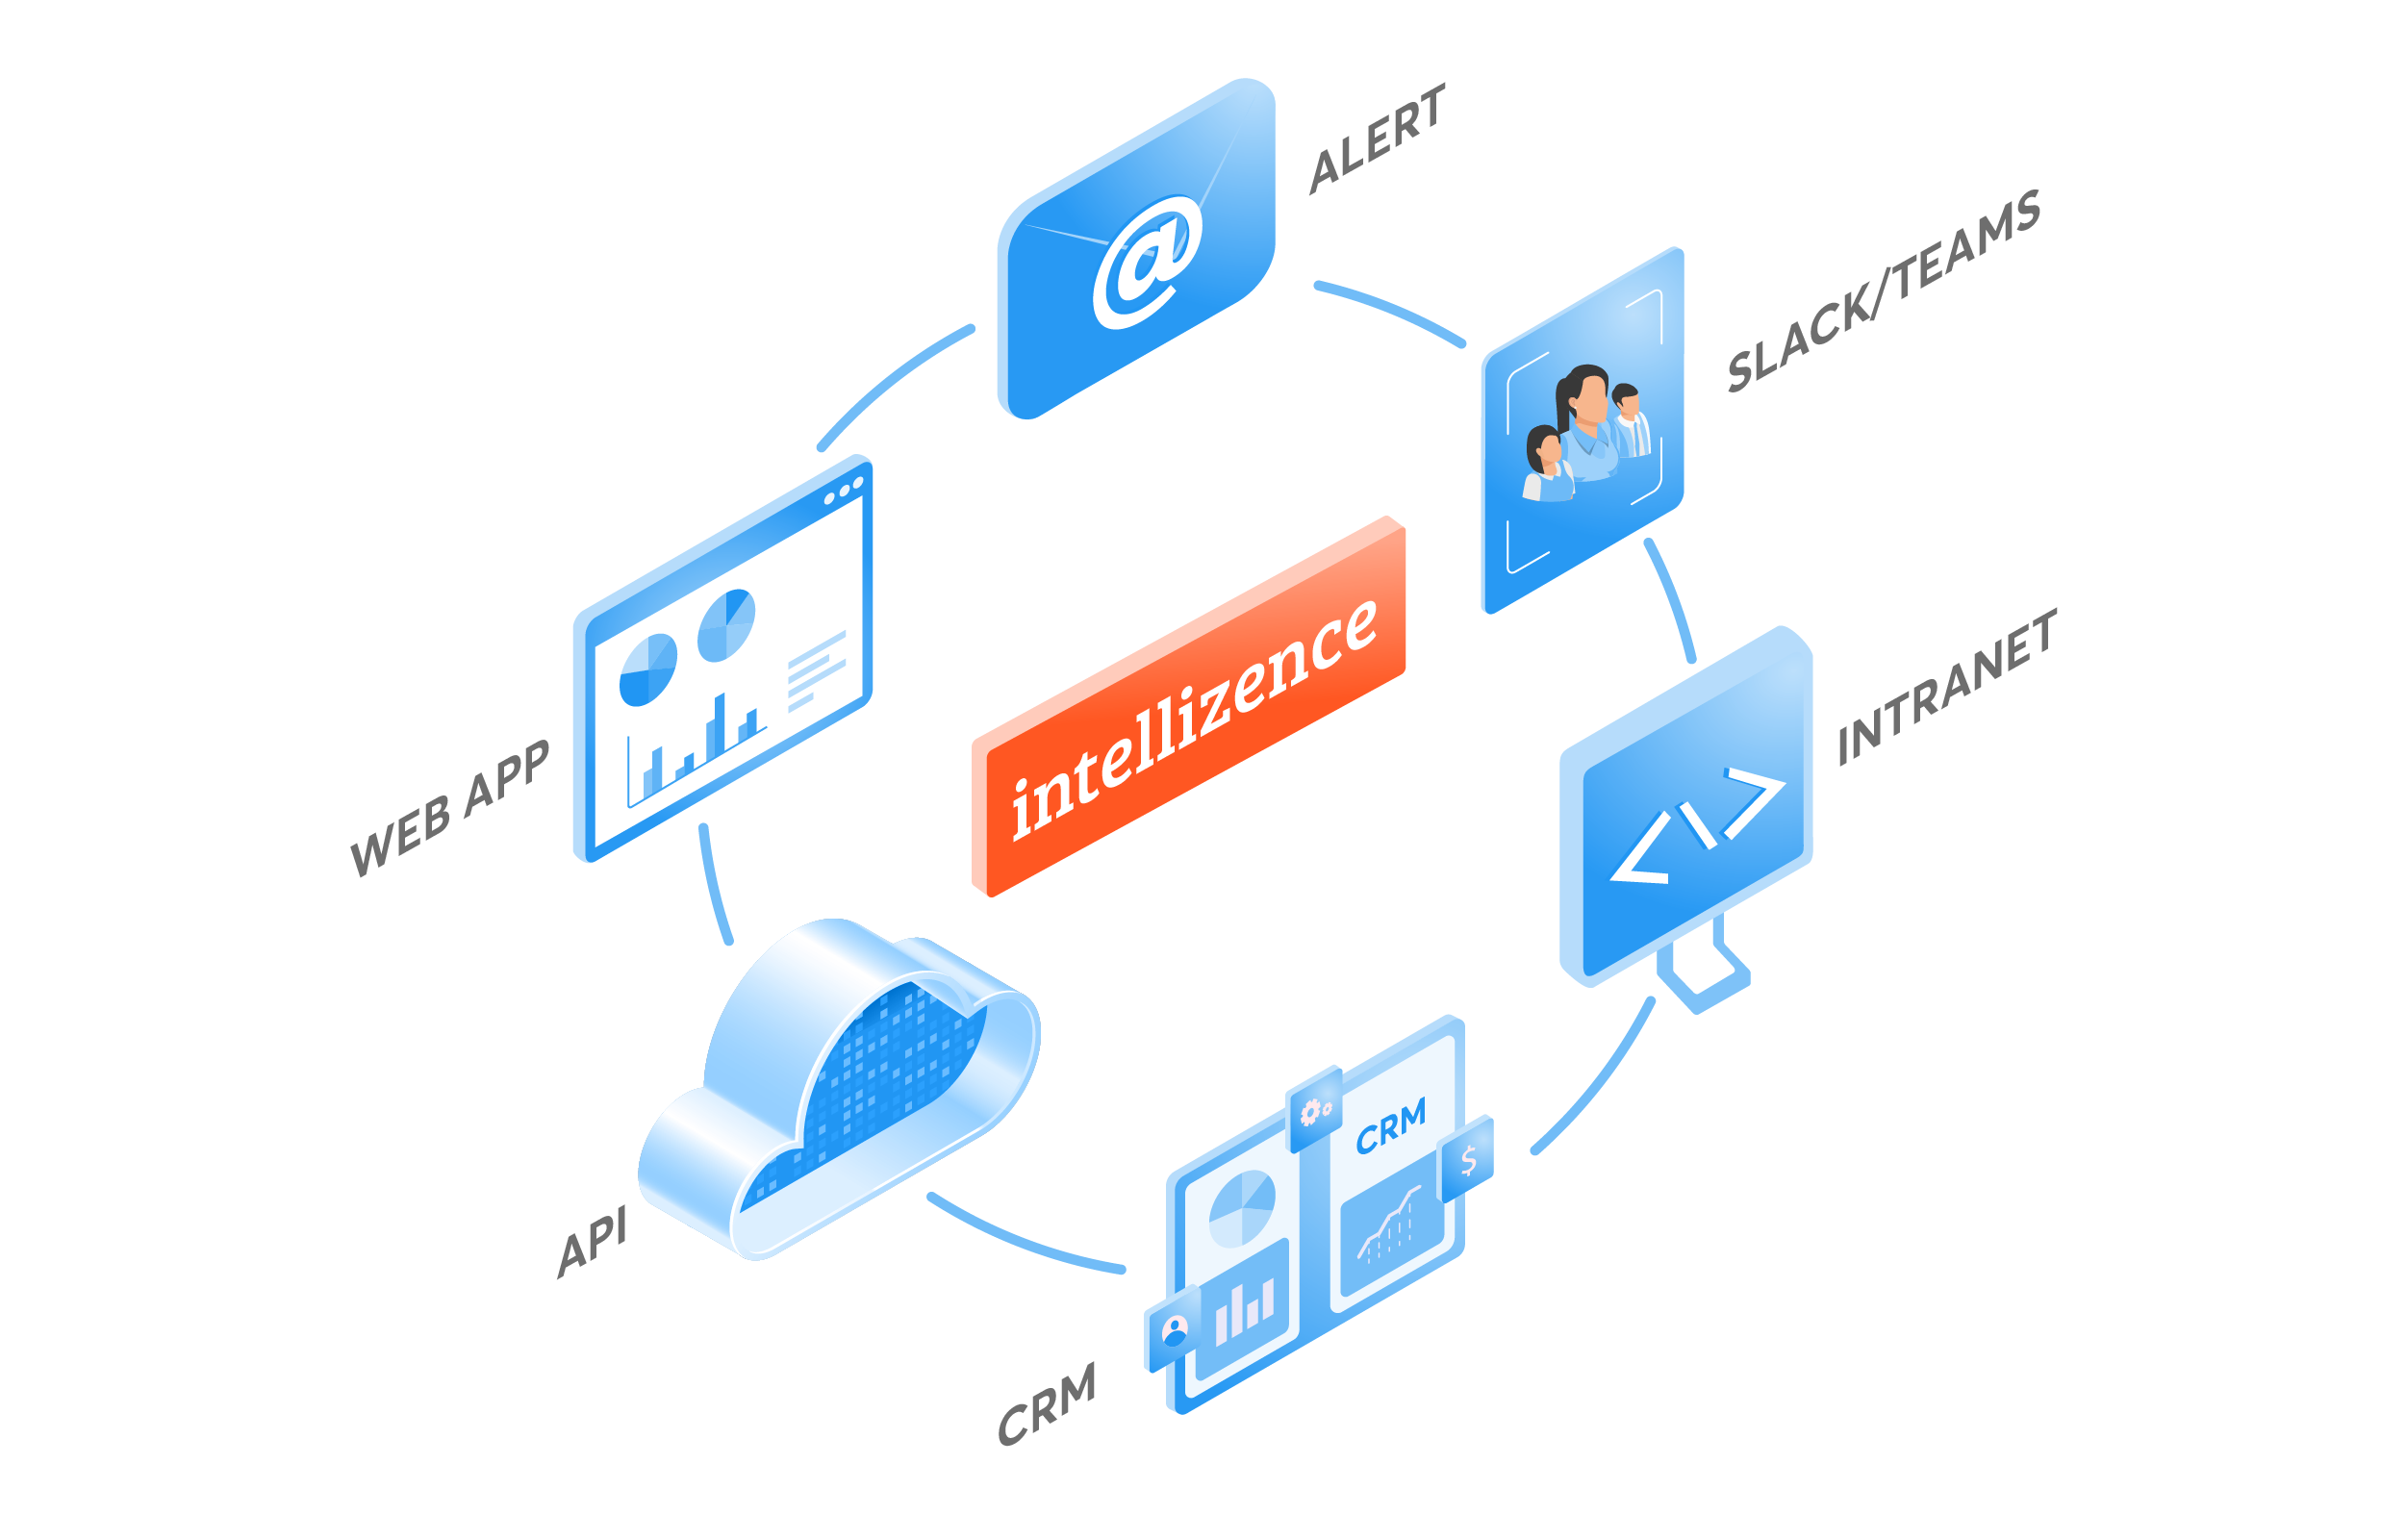 Intellizence Delivery Channels_Anywhere, Anyway, Anytime